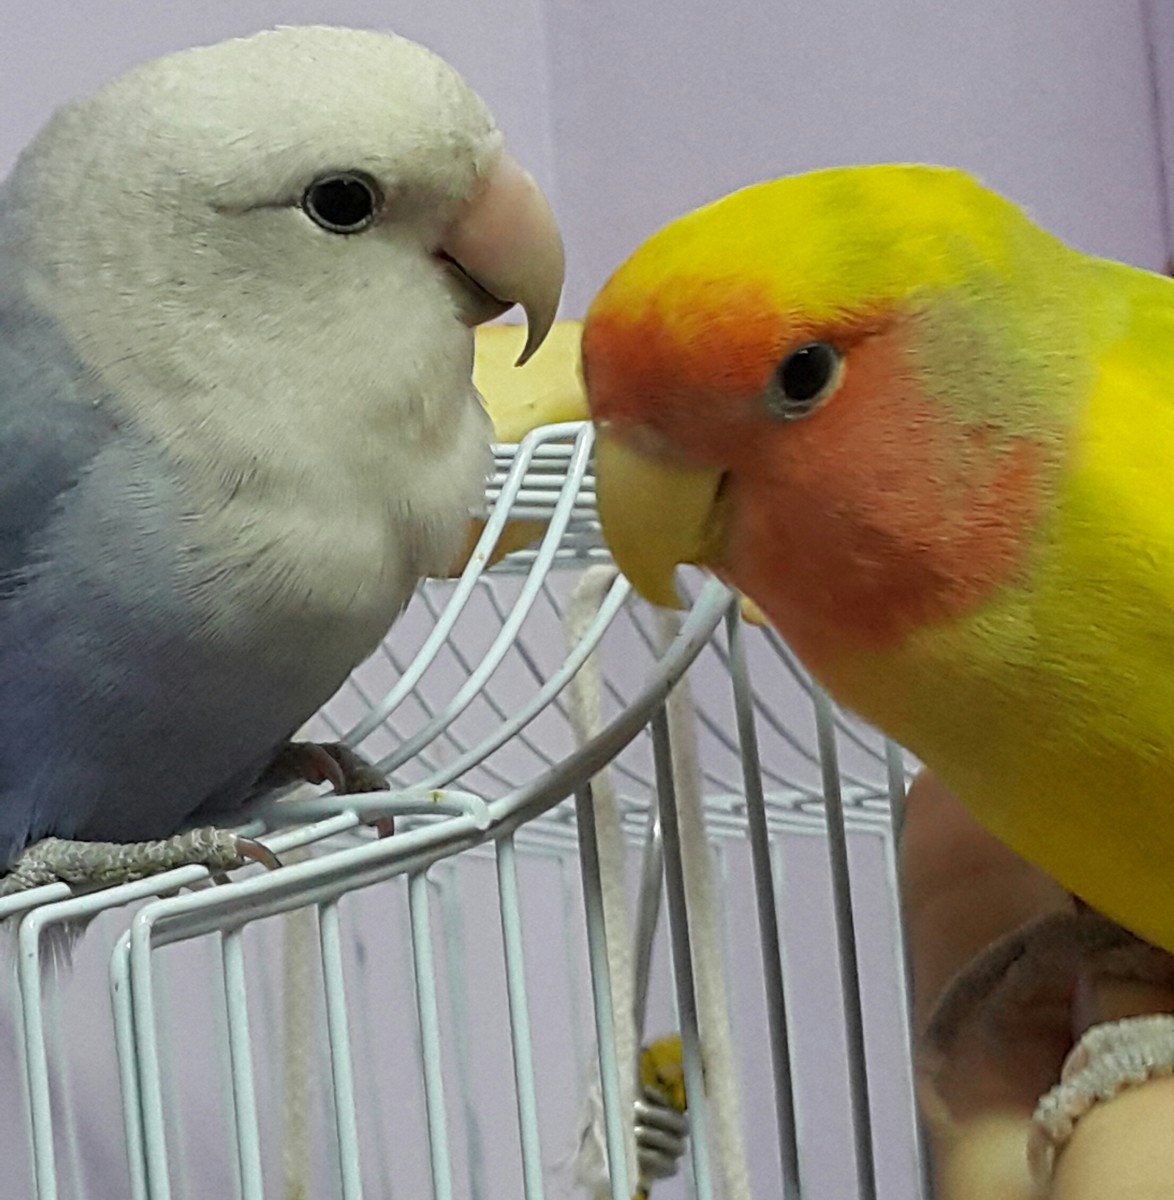 Picture showing a peach-faced male lovebird, Mumu, with his mate Lulu, who is a white-faced violet roseicollis peach-faced female lovebird.